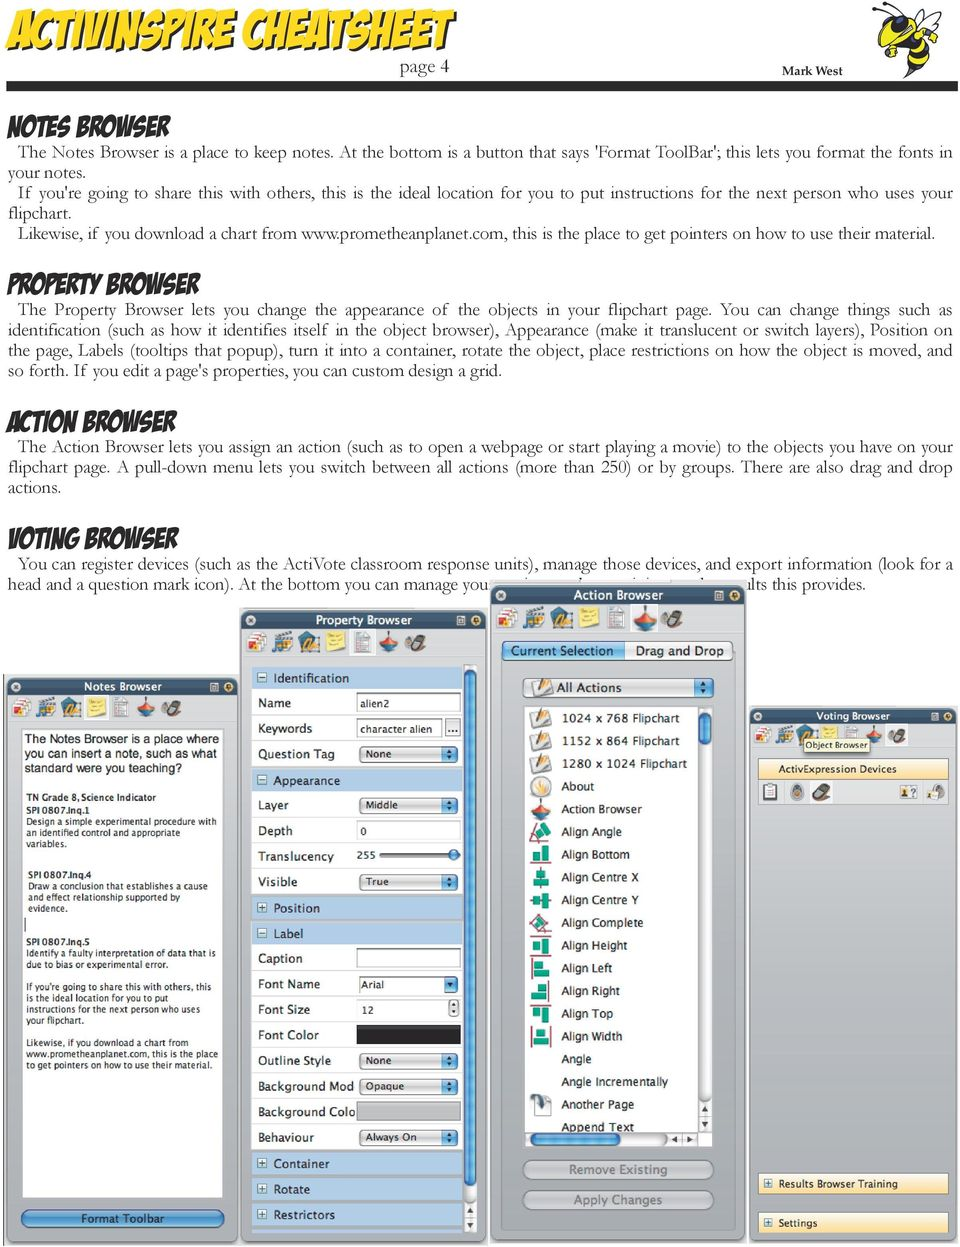 prometheanplanet.com, this is the place to get pointers on how to use their material. Property Browser The Property Browser lets you change the appearance of the objects in your flipchart page.